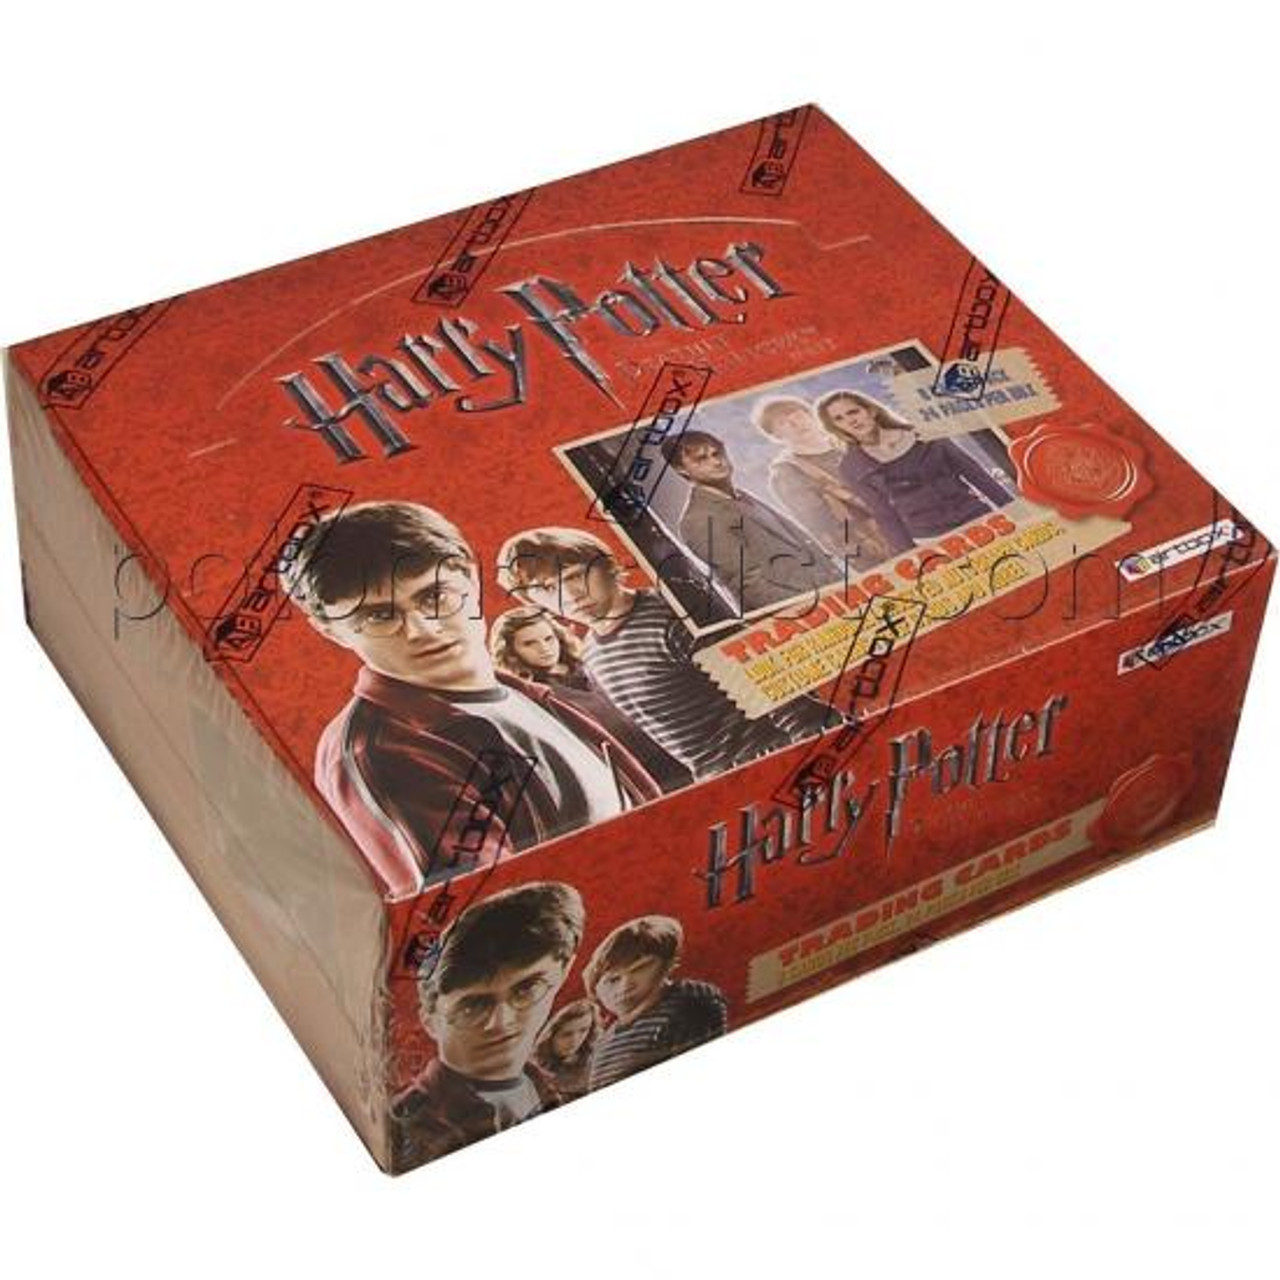 Harry Potter The Deathly Hallows Part 1 Trading Card Box